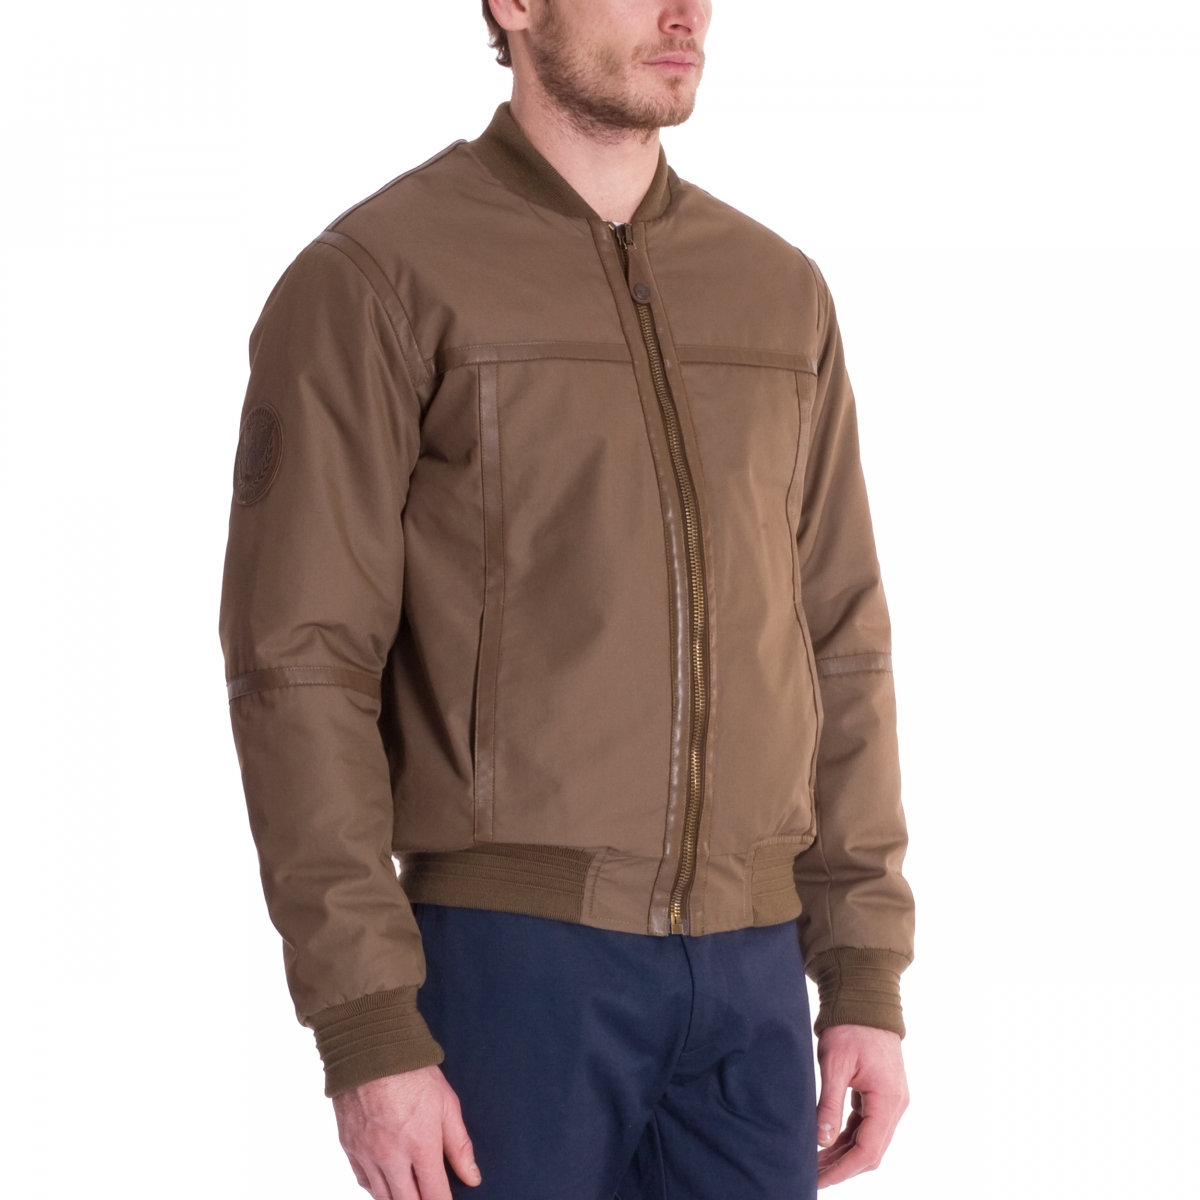 Le bomber aviateur en cuir made in France vue trois quart